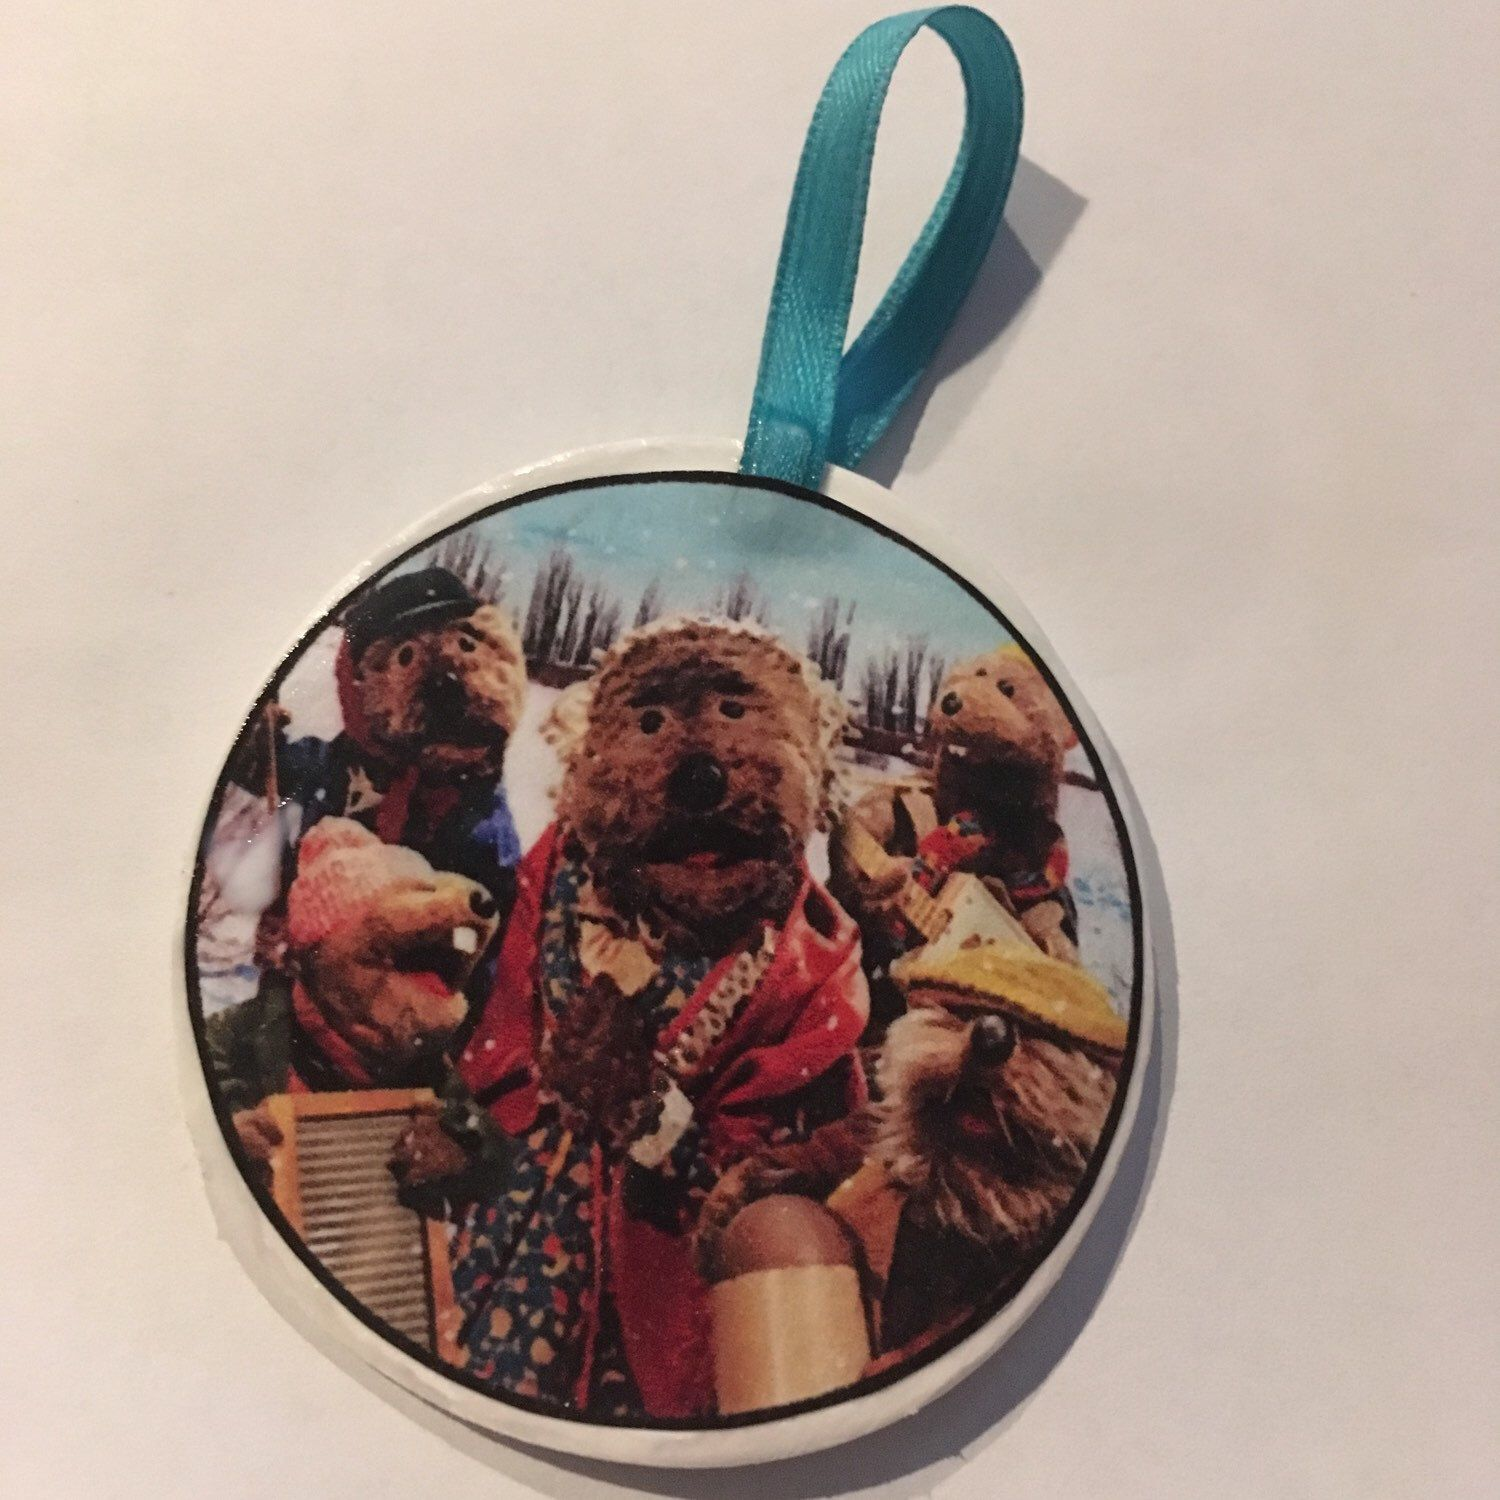 Emmet Otter was our most popular this holiday season and